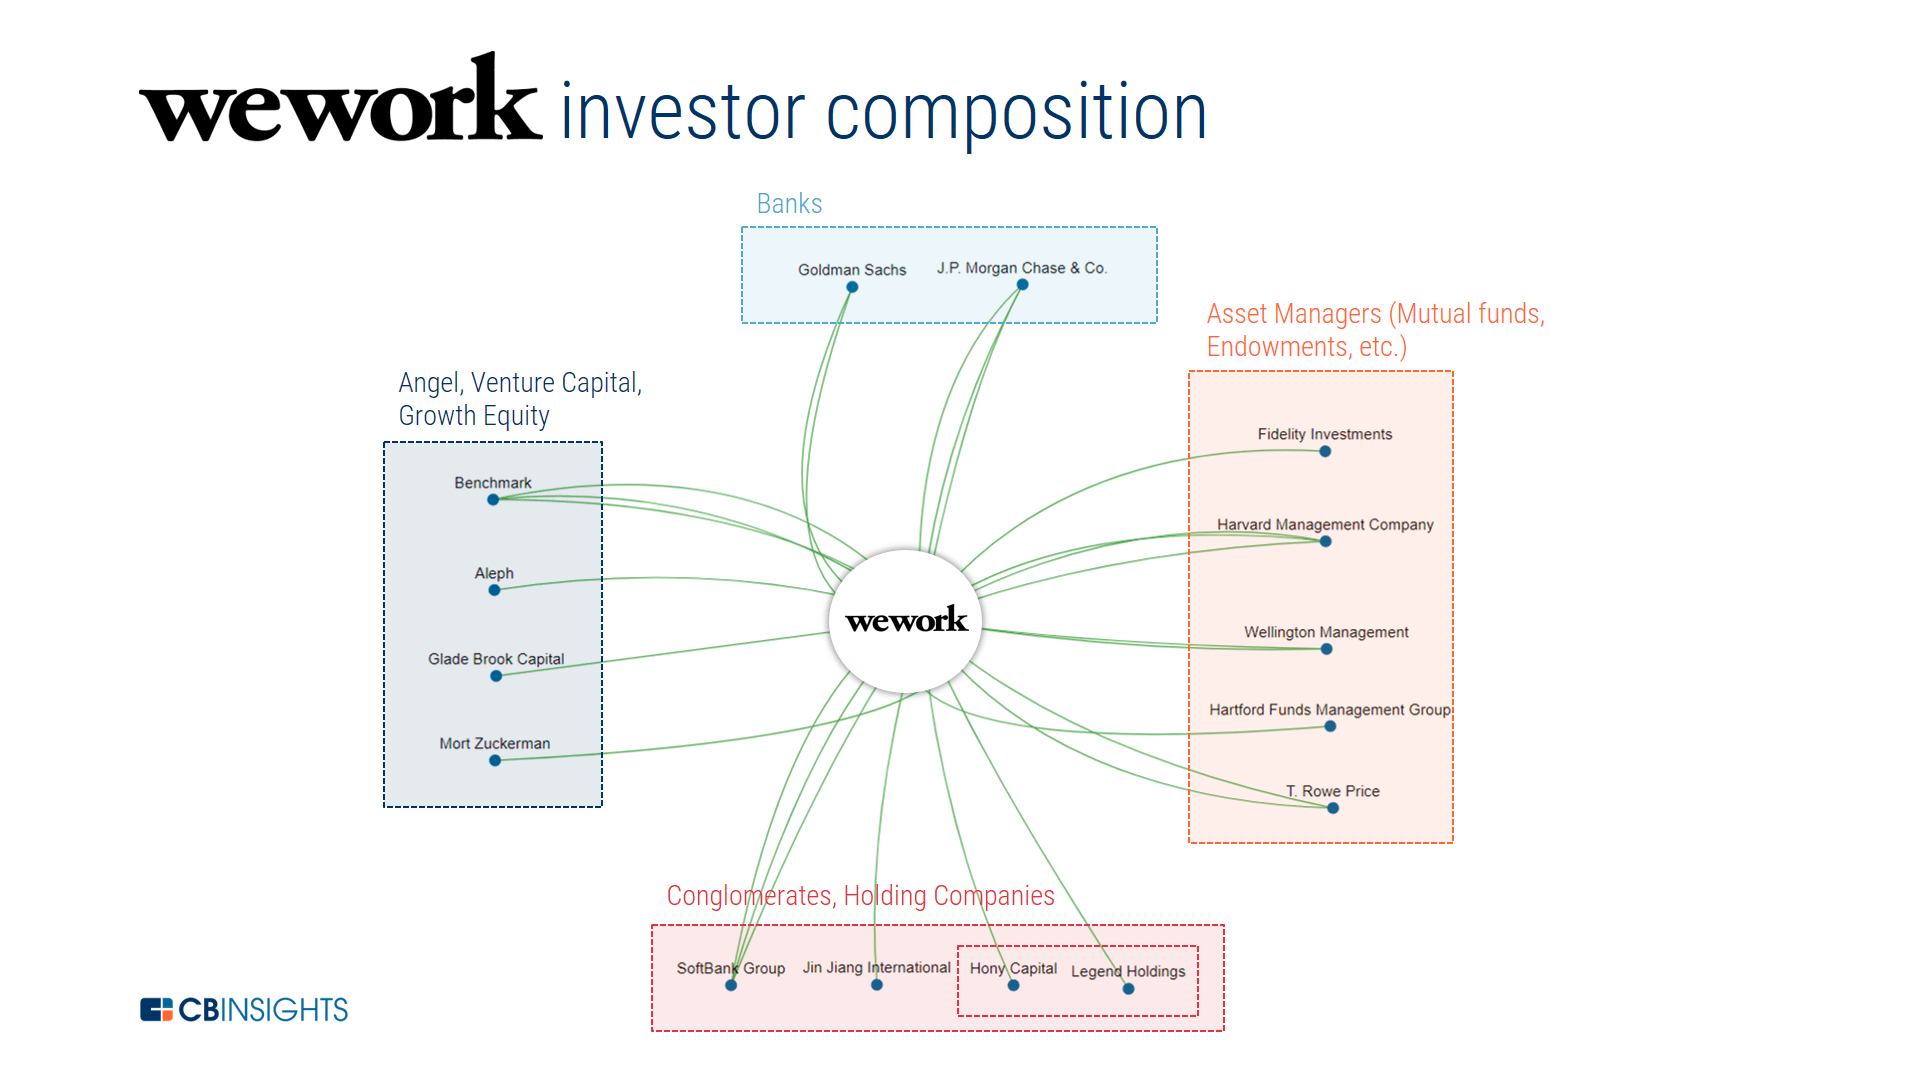 The Wework Report Car Parts Outsourced Diagram Company Is Also Backed By Some Notable Chinese Investors Including Legend Holdings Parent To Lenovo And Jin Jiang International